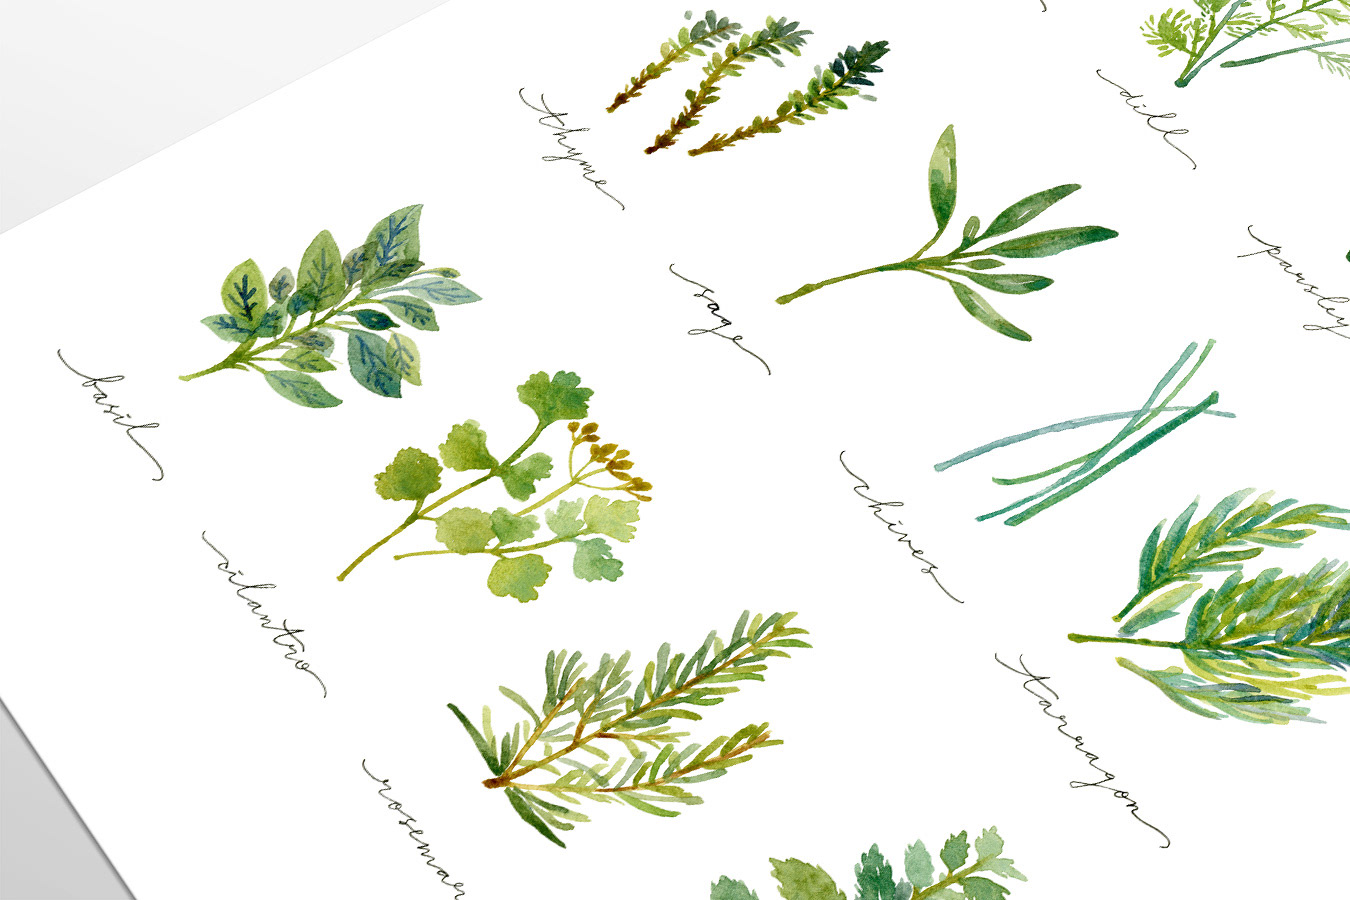 Jessica andriany hartono portfolio culinary herbs watercolor material watercolor ink on cold press watercolor paper prints are available on my etsy shop here is the direct link sciox Image collections